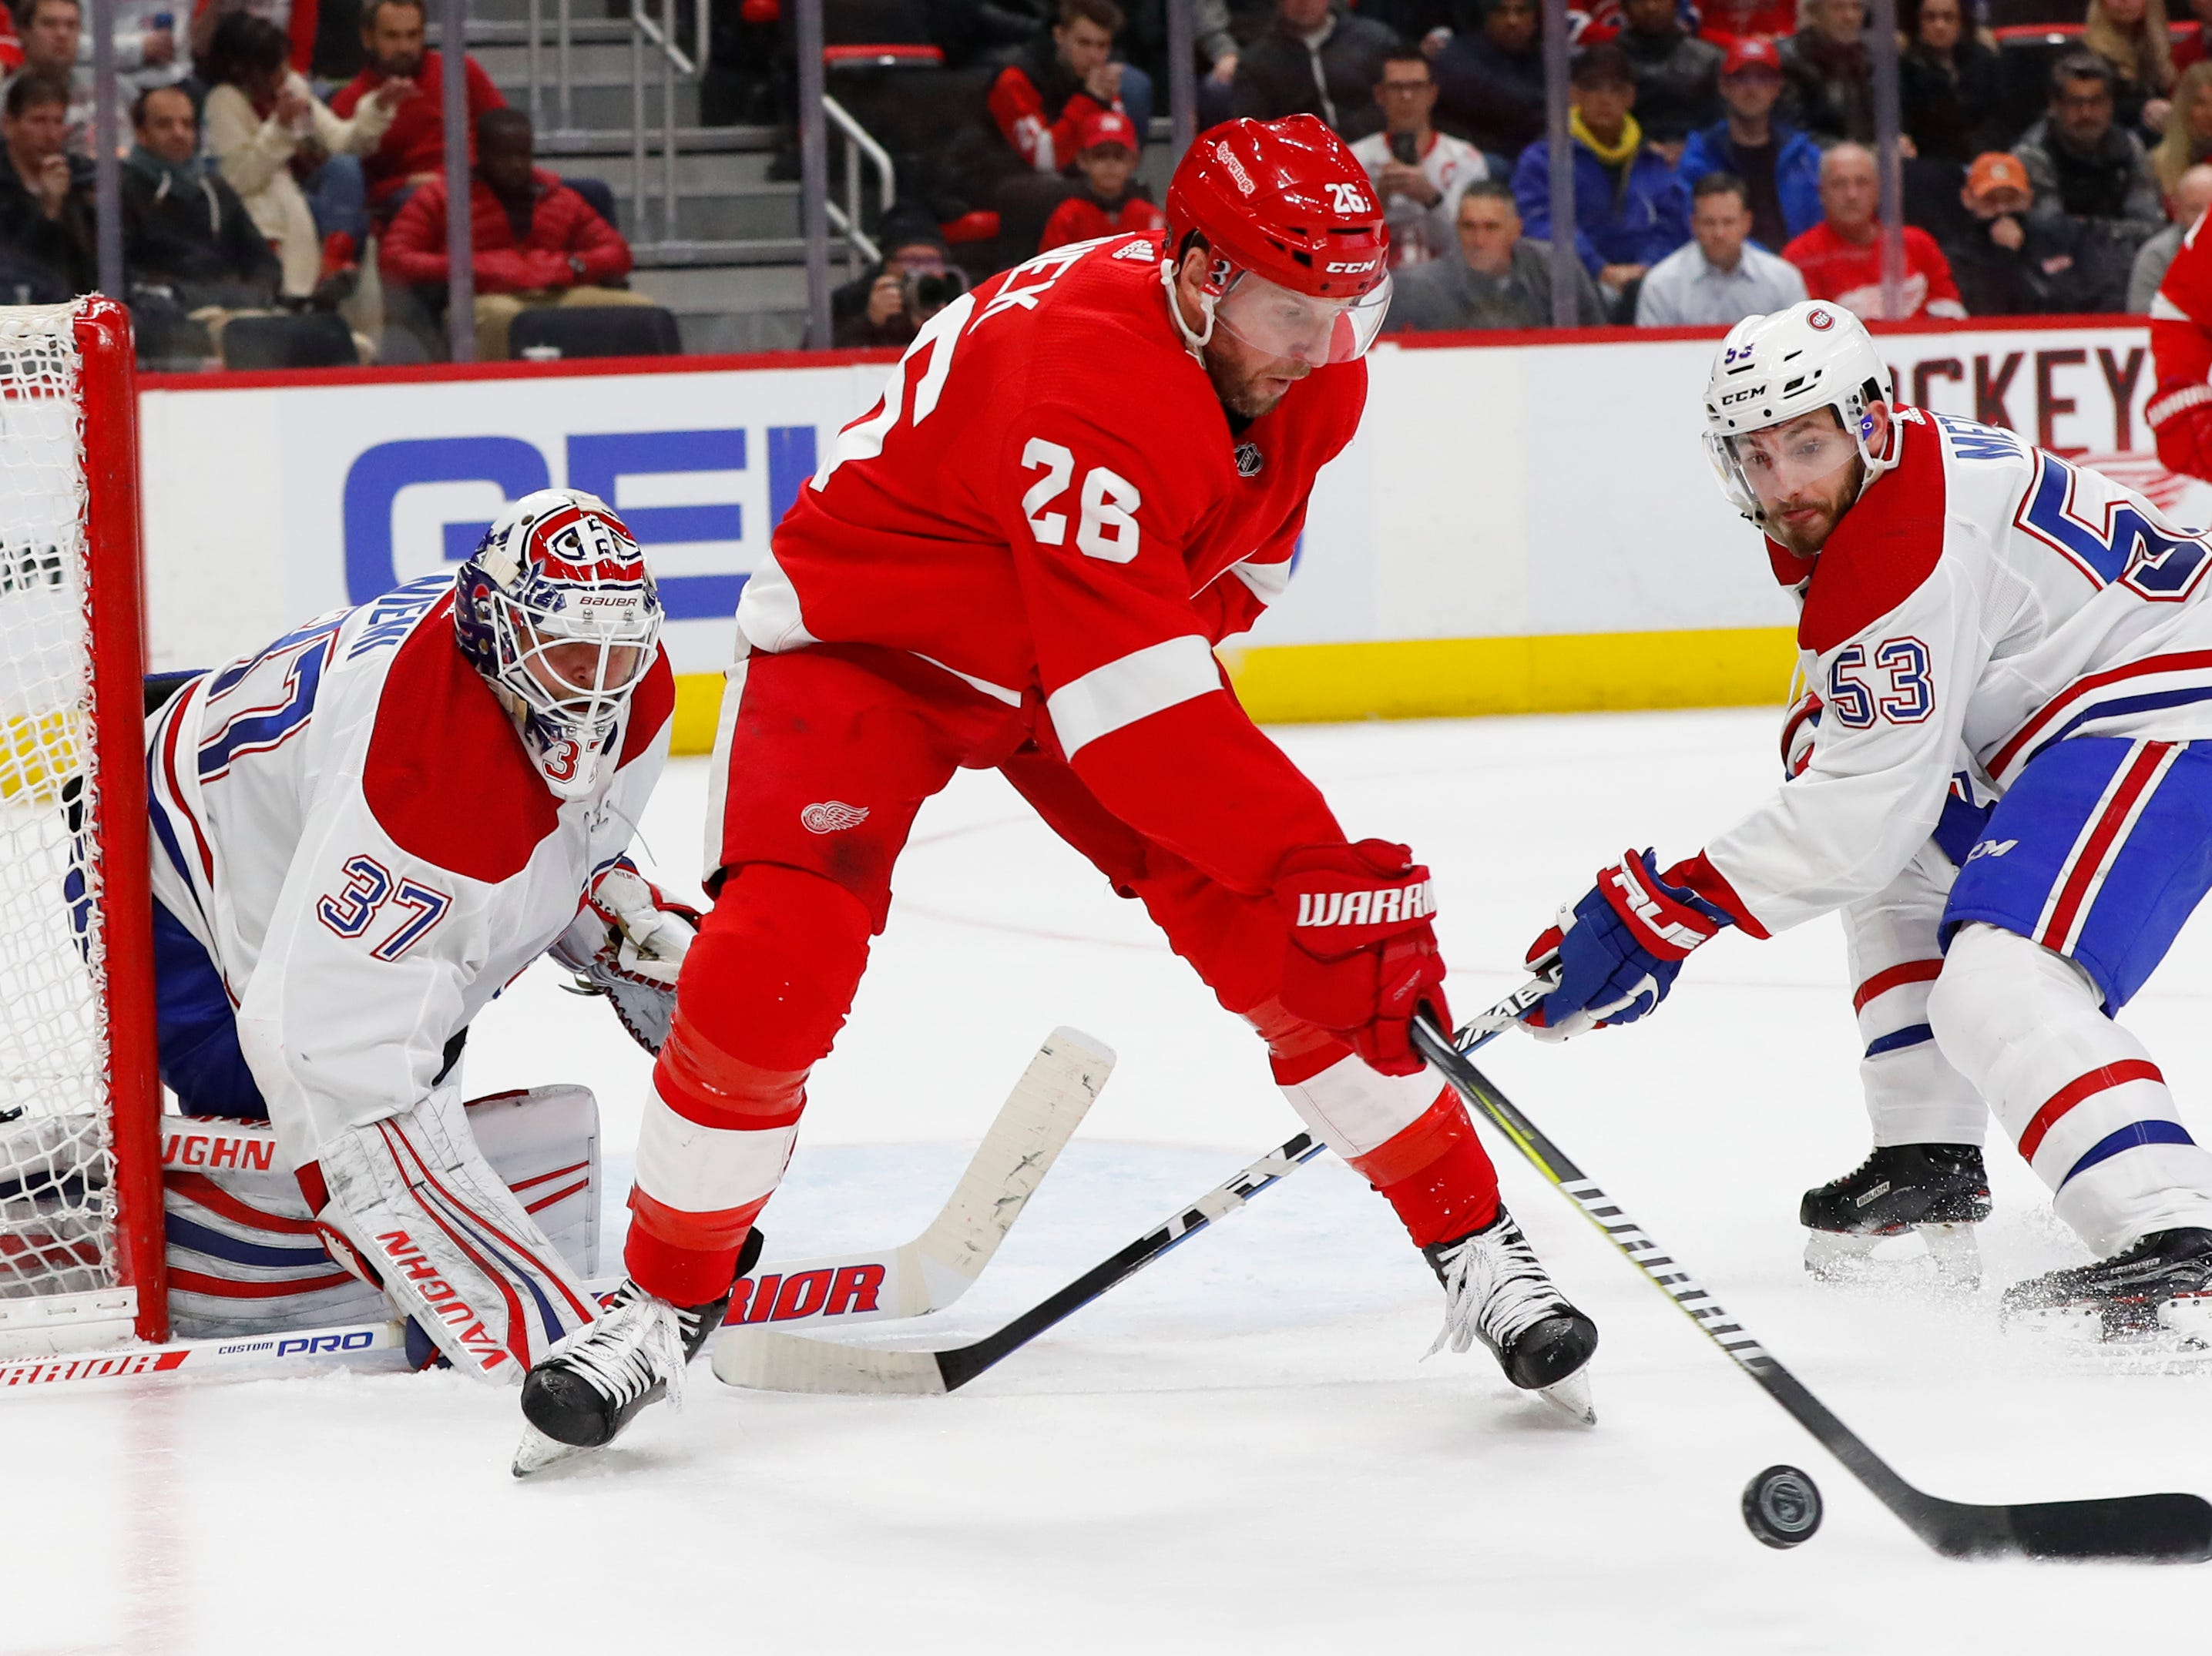 Detroit Red Wings left wing Thomas Vanek (26) controls the puck in front of Montreal Canadiens goaltender Antti Niemi (37) as Victor Mete (53) defends in the second period.